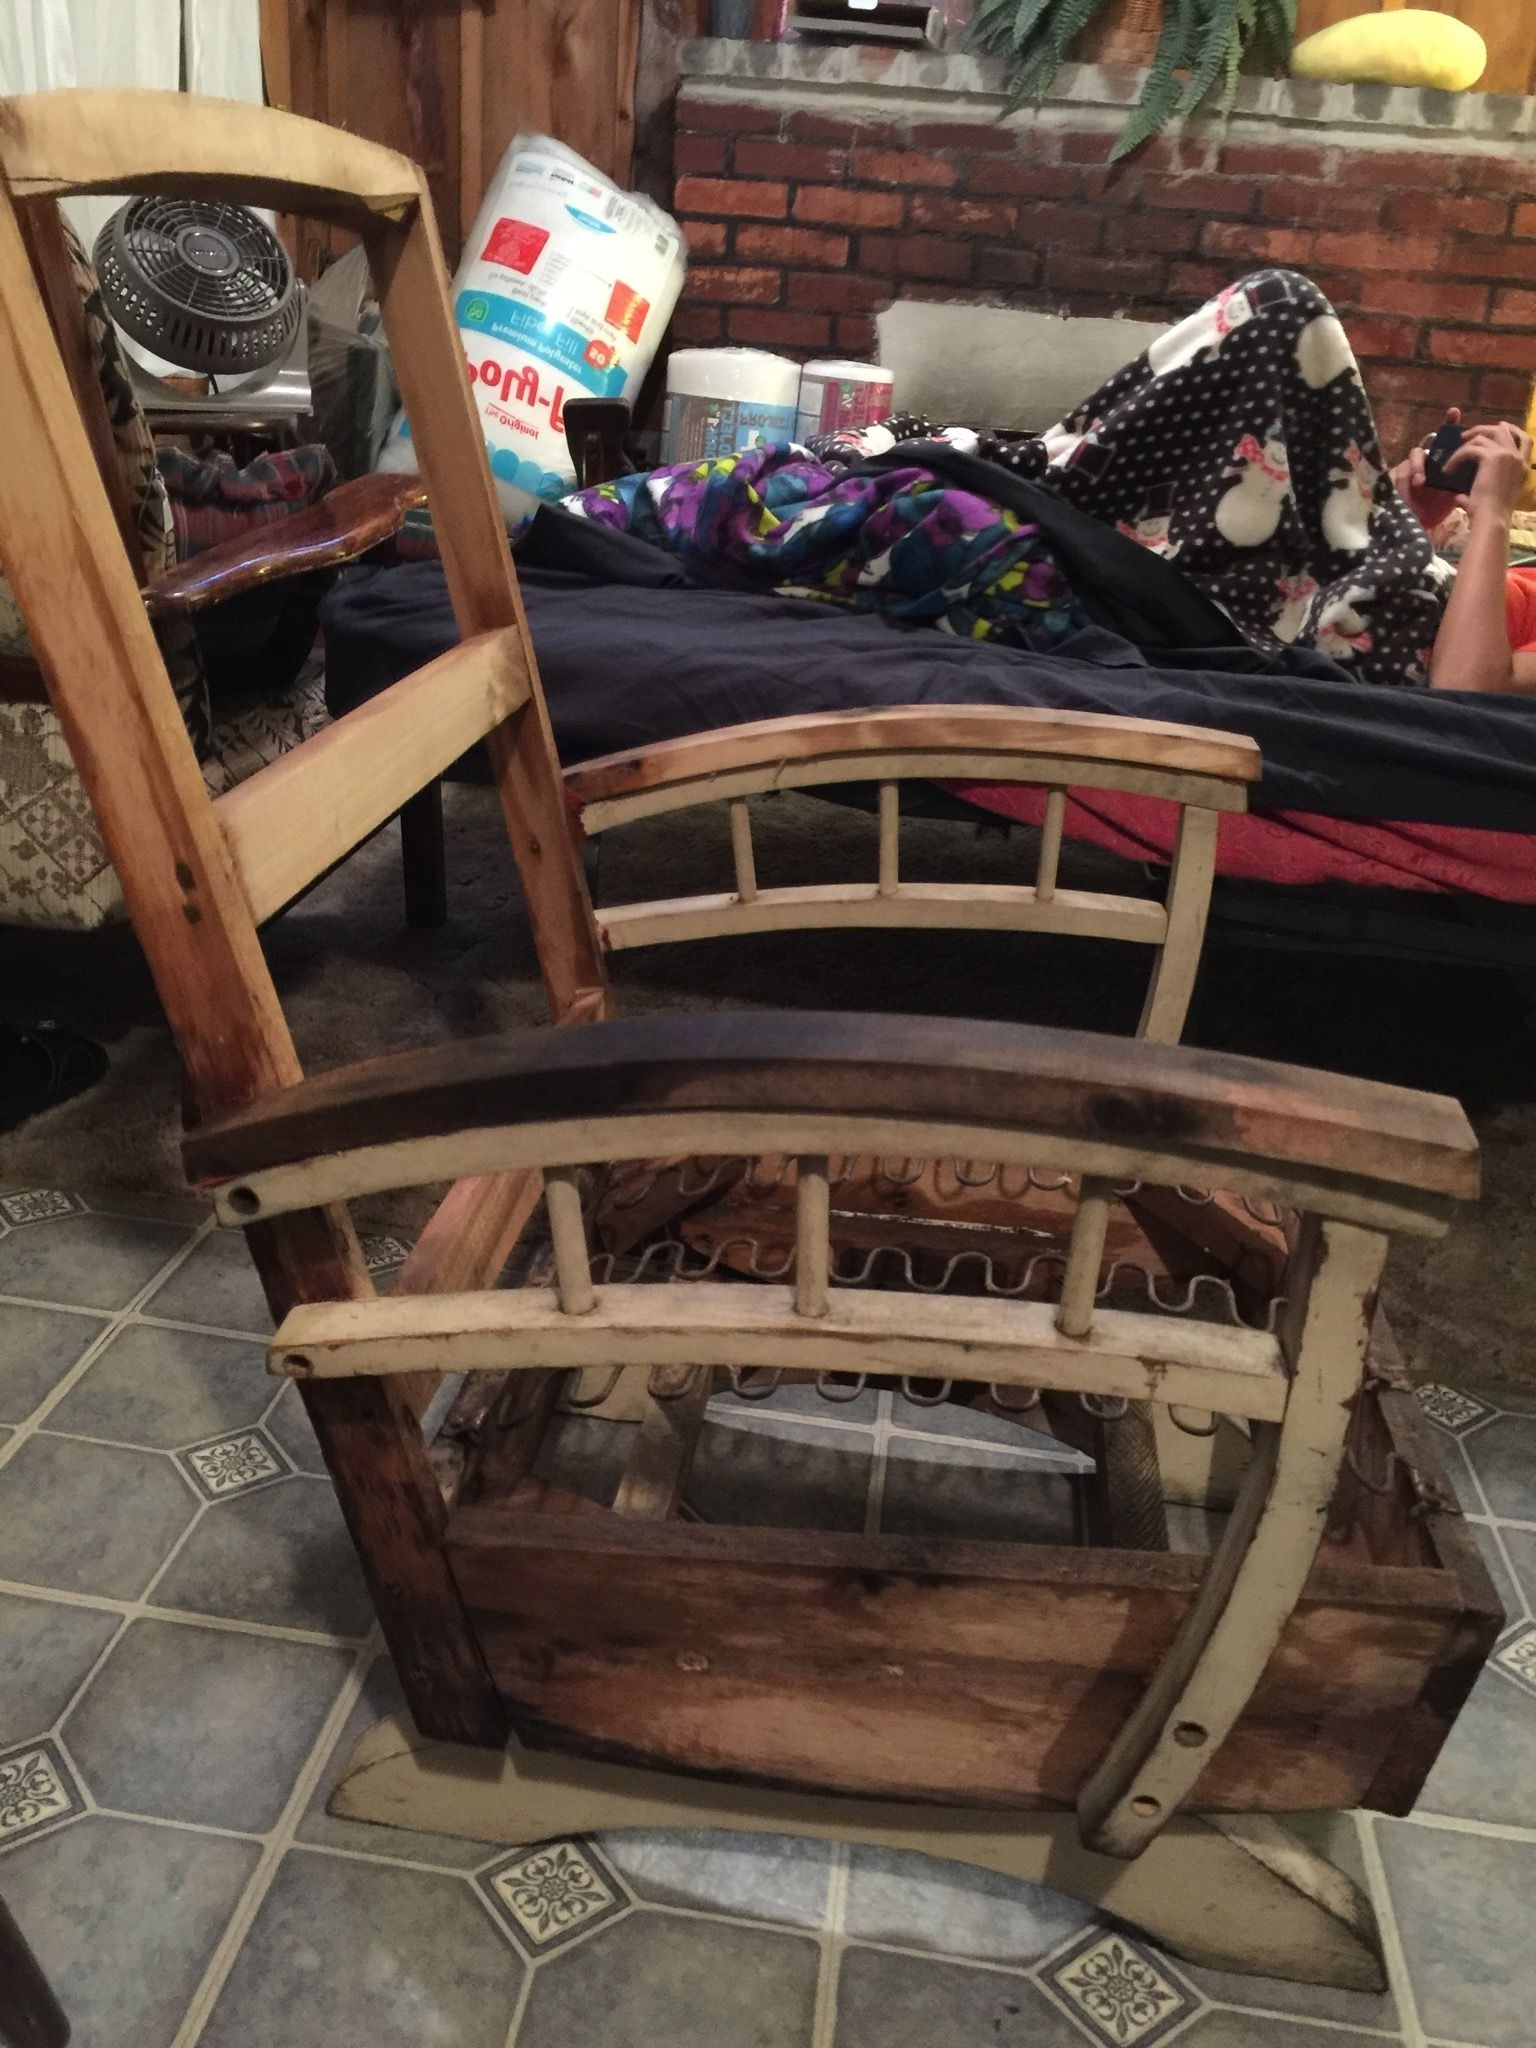 Zen Rocking Chairs With Best And Newest Naked Chair! Stripped Down To Bare Bones! On Vacation In Maine (View 11 of 15)